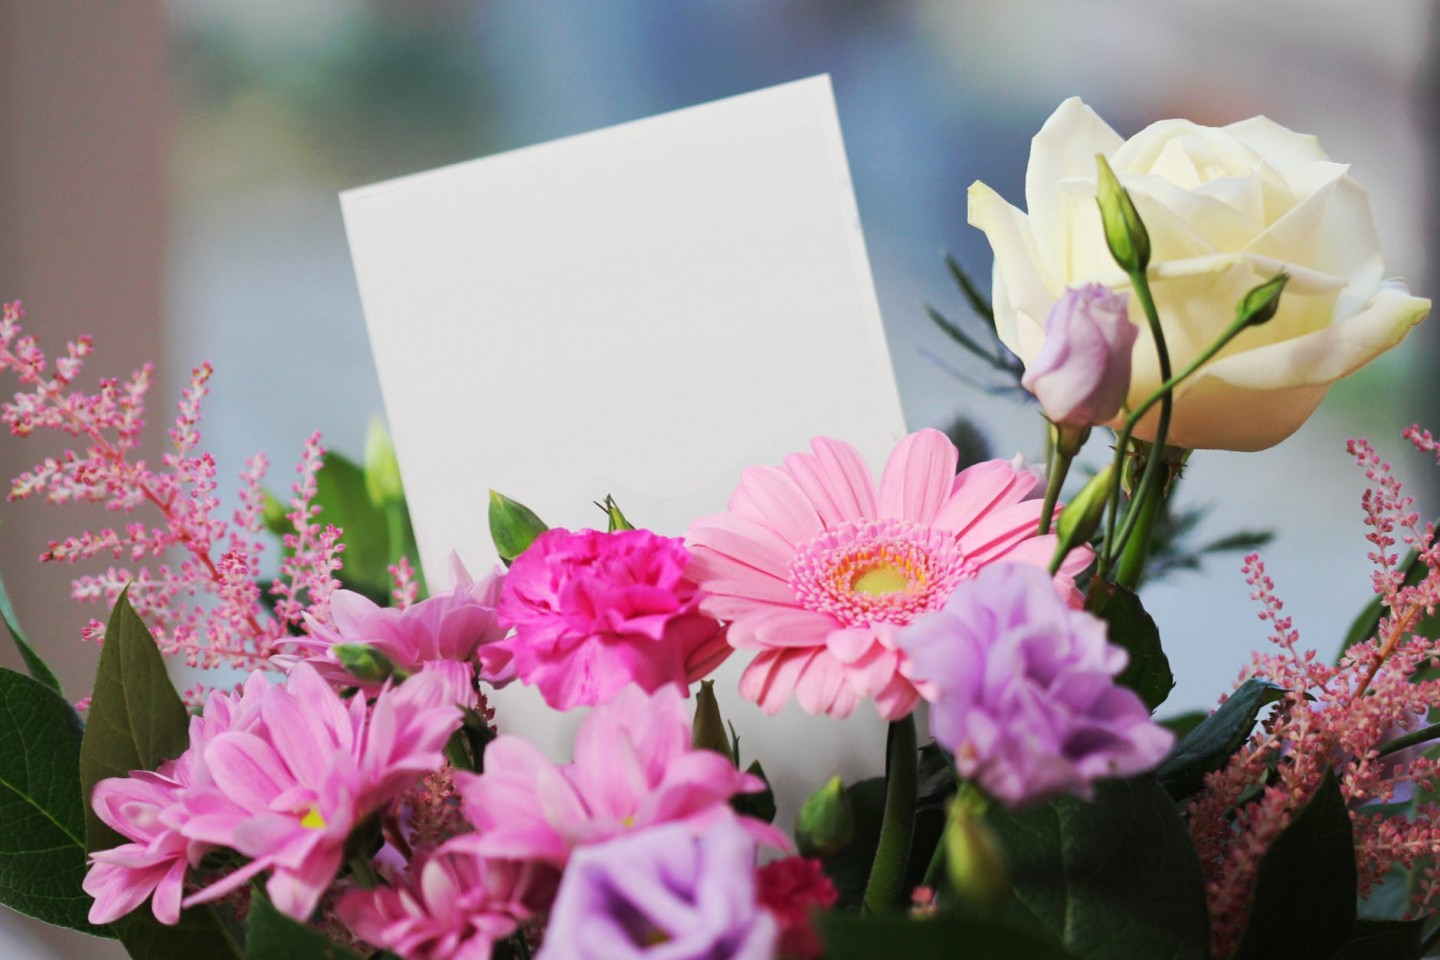 Christmas Shopping | Why Flowers Are an Ideal Gift